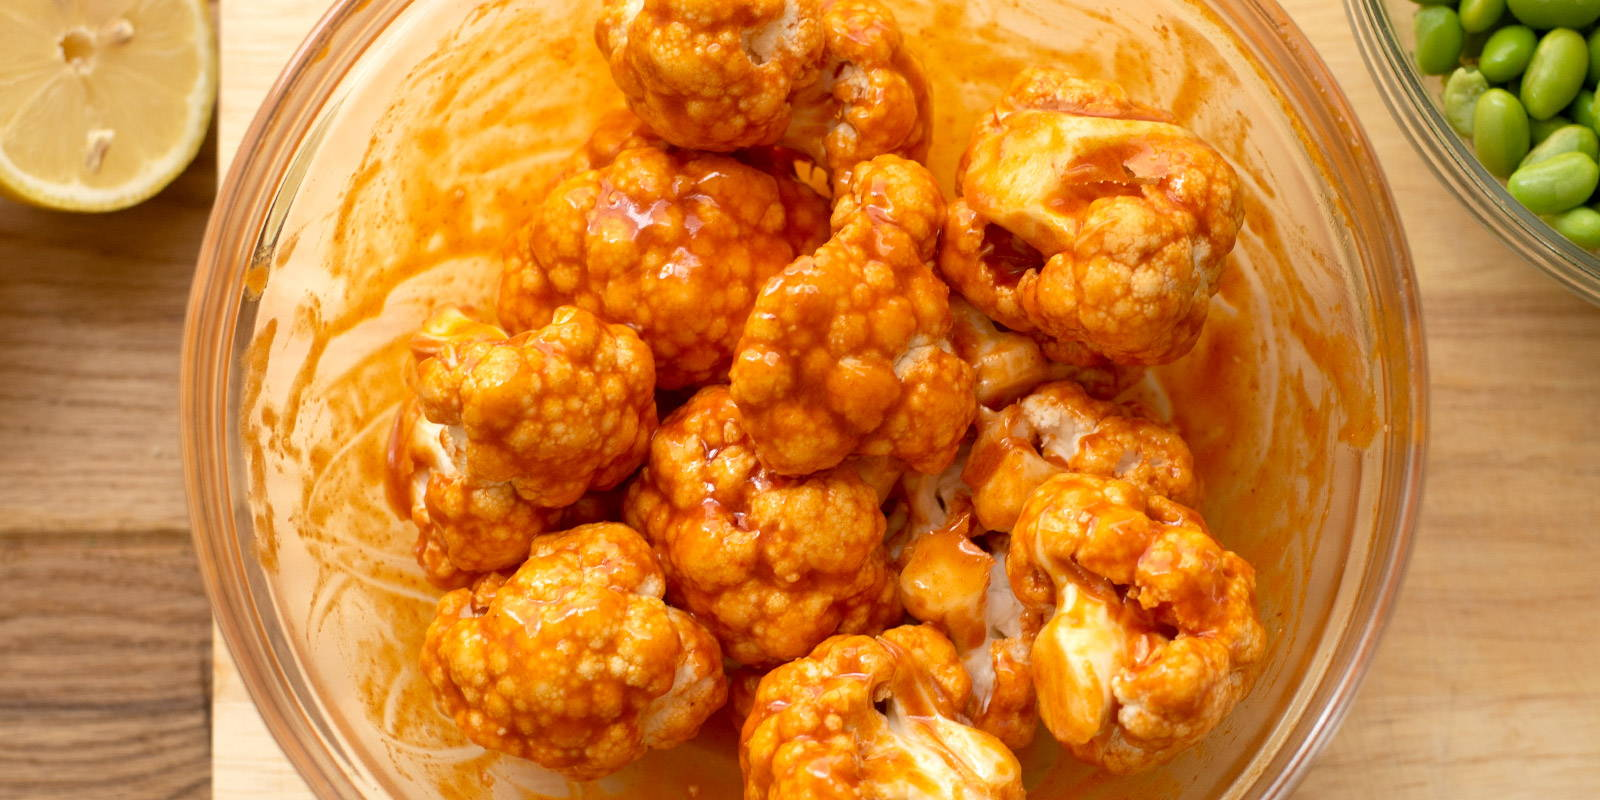 Bowl of cauliflower florets coated in buffalo sauce.